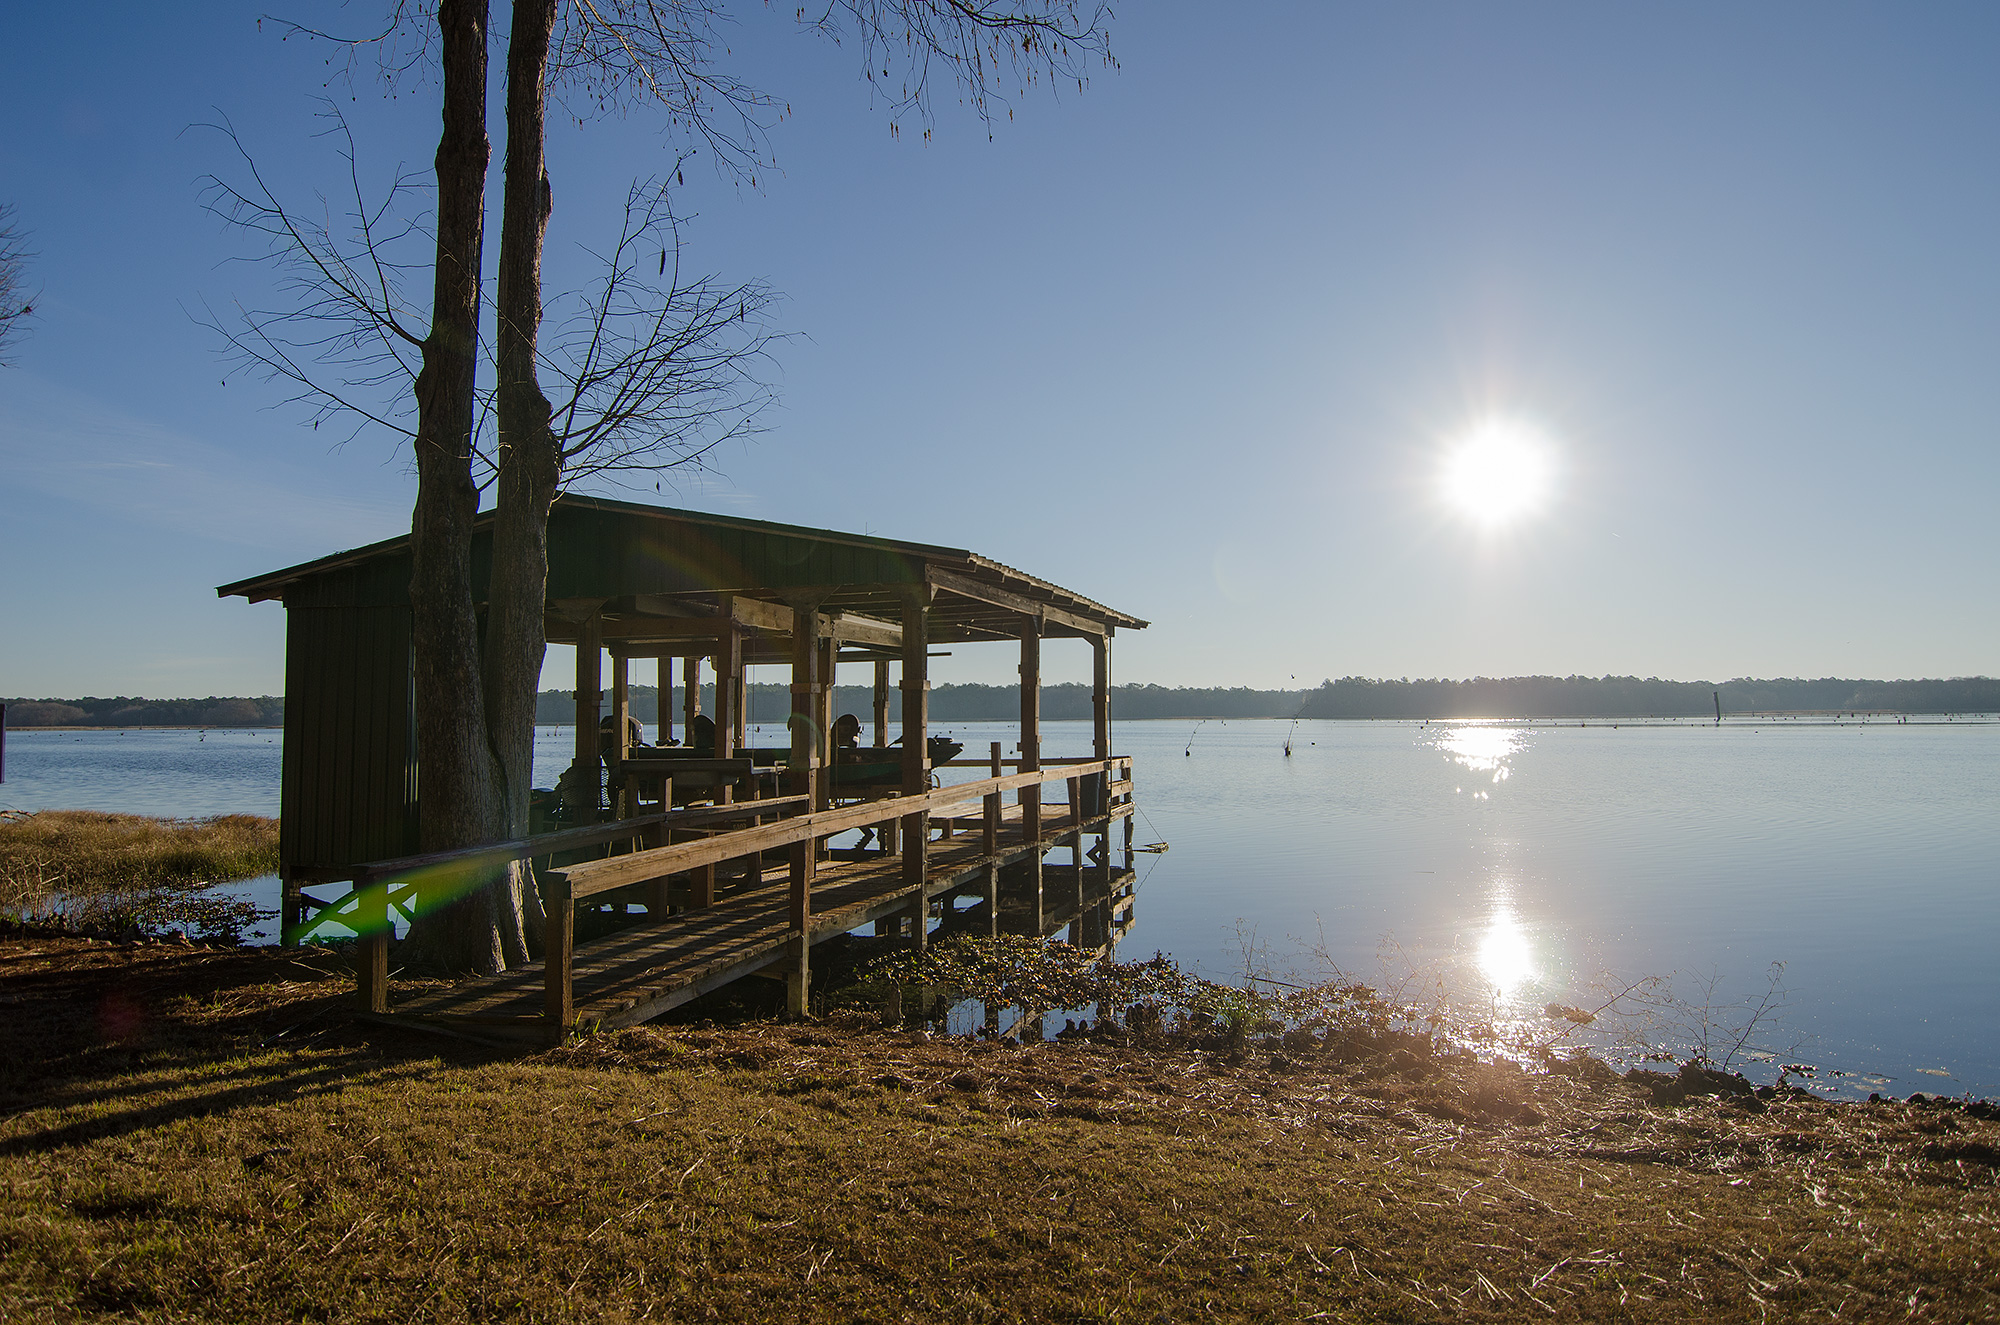 3riversrealty,spring-creek,watefront,south-georgia,lake-seminole,vacation-home,dock,mills-brock.jpg